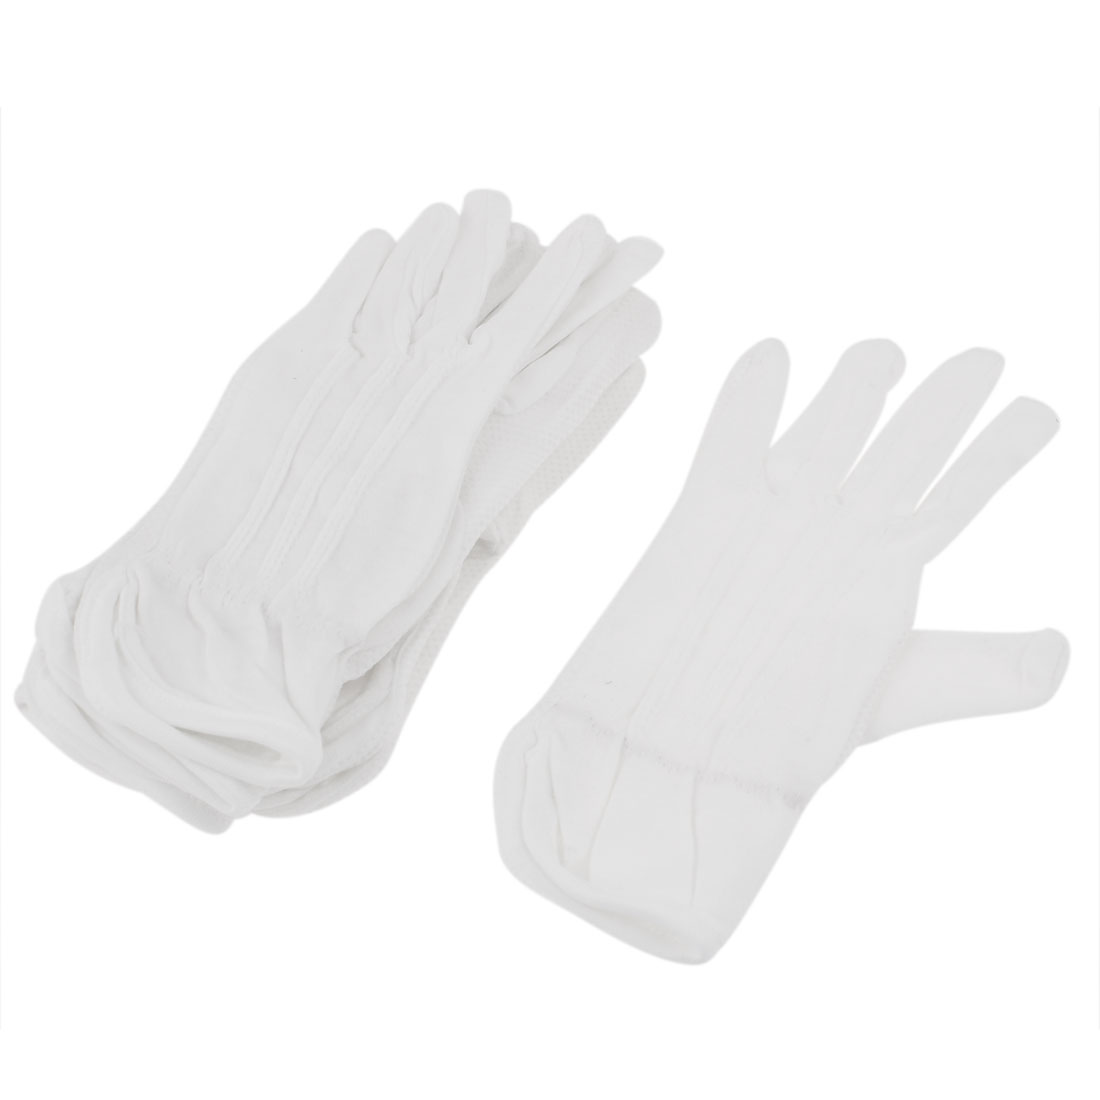 5 Pairs White Rubber Dots Pattern Protective Antiskid Anti-Slip Working Driving Gloves